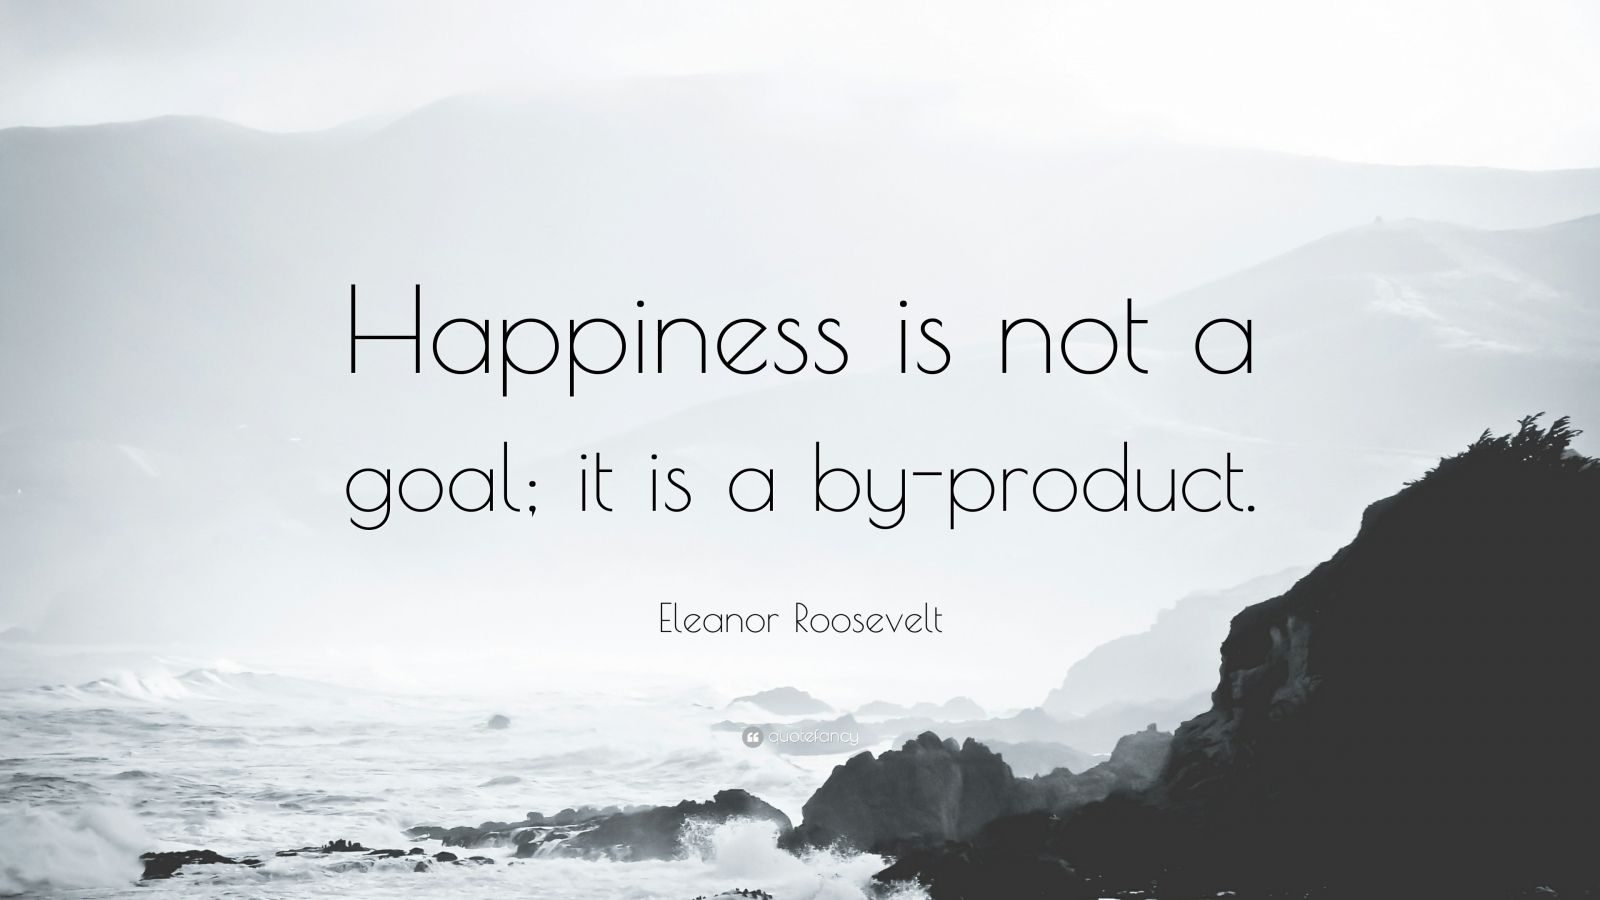 Delicieux Happiness Quotes: U201cHappiness Is Not A Goal; It Is A By Product